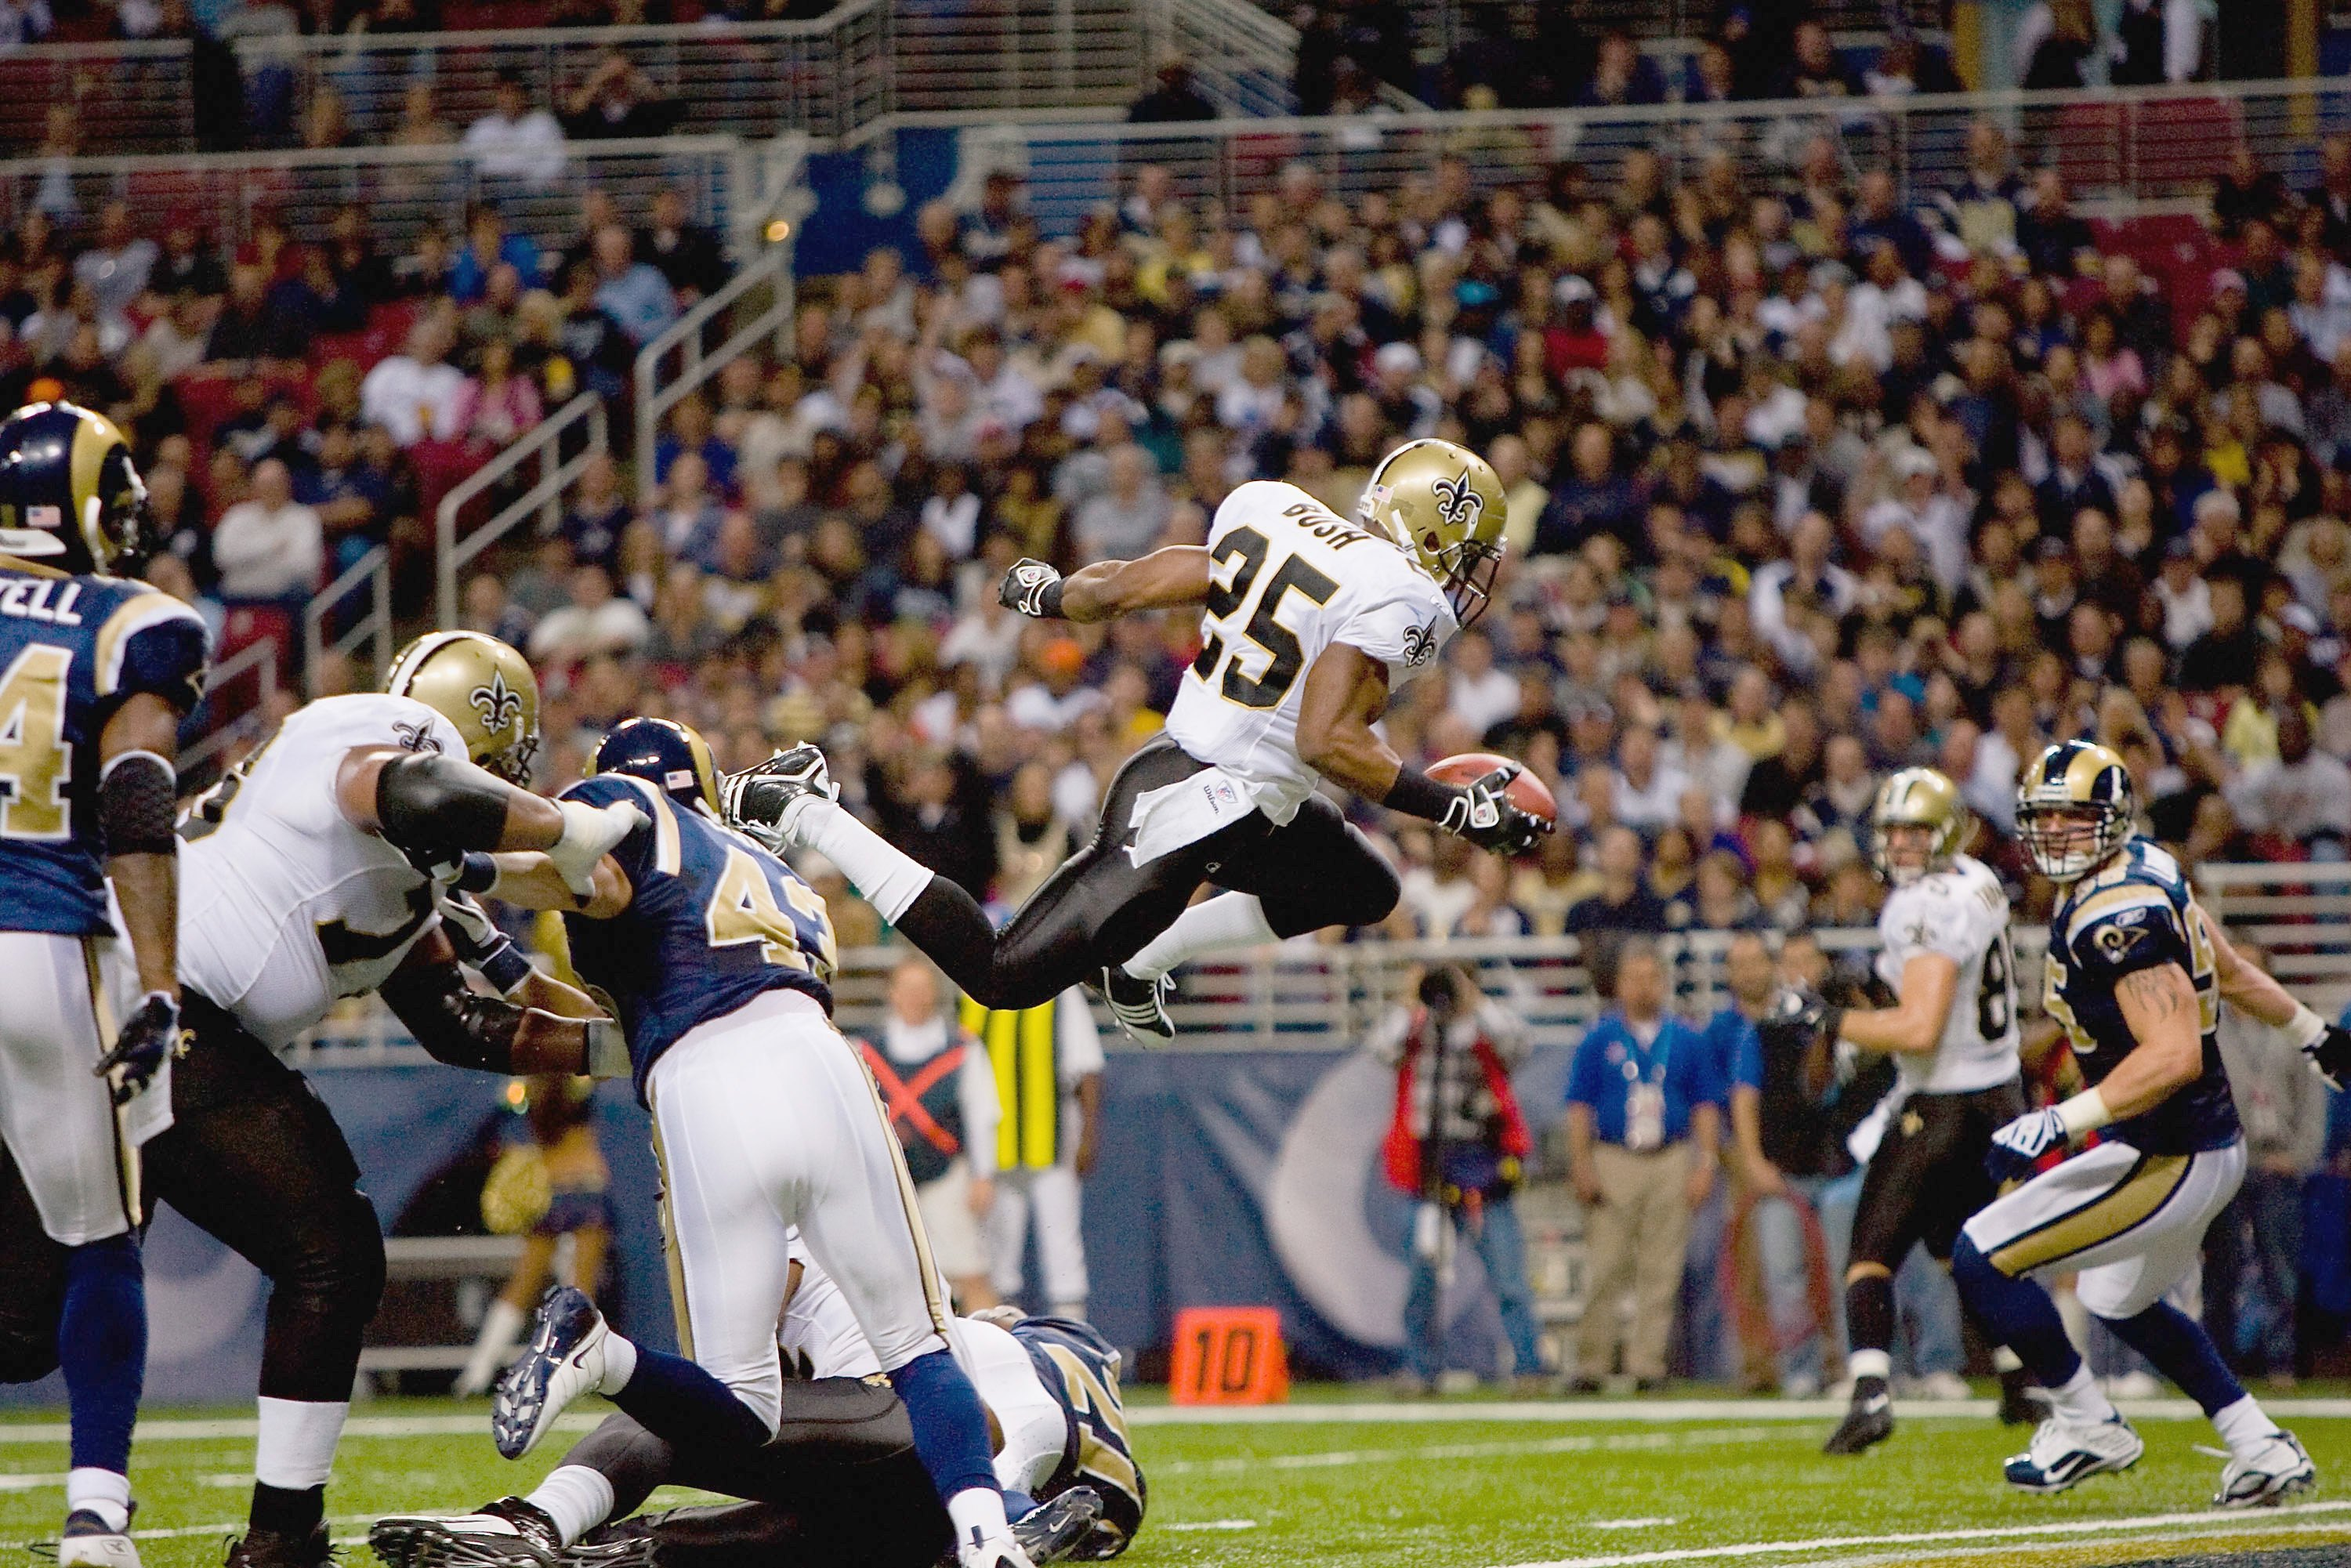 ST. LOUIS - NOVEMBER 15:  Reggie Bush #25 of the New Orleans Saints leaps for the endzone during the game against the St. Louis Rams at the Edward Jones Dome on November 15, 2009 in St. Louis, Missouri.  (Photo by Dilip Vishwanat/Getty Images)